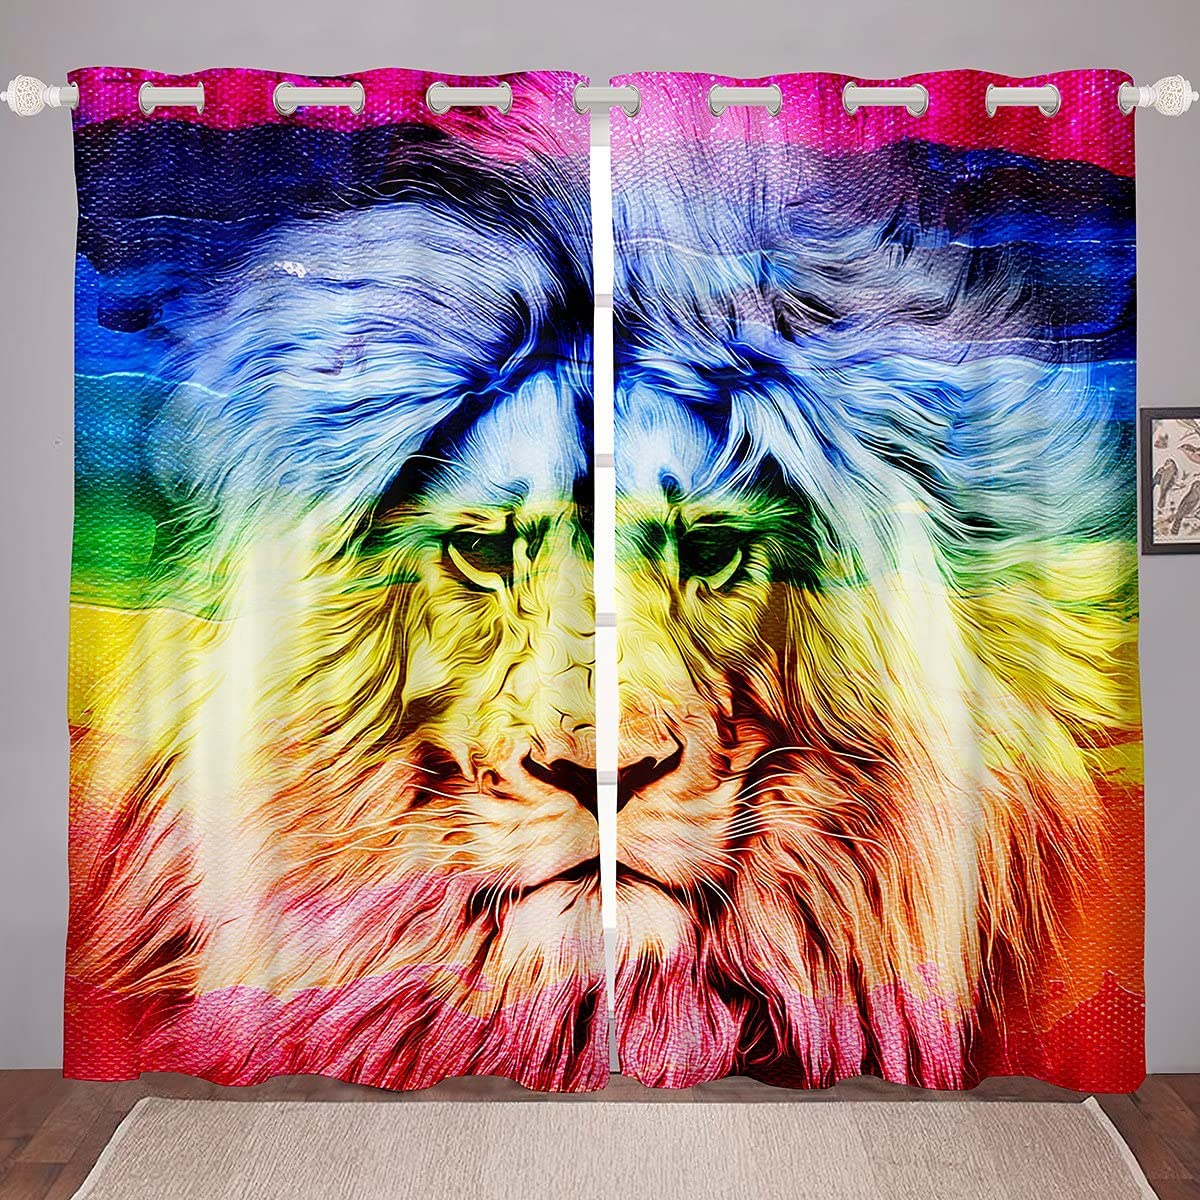 Lion Design Sale special price Youth Window Drapes Strong Max 77% OFF Africa Styl Wildlife